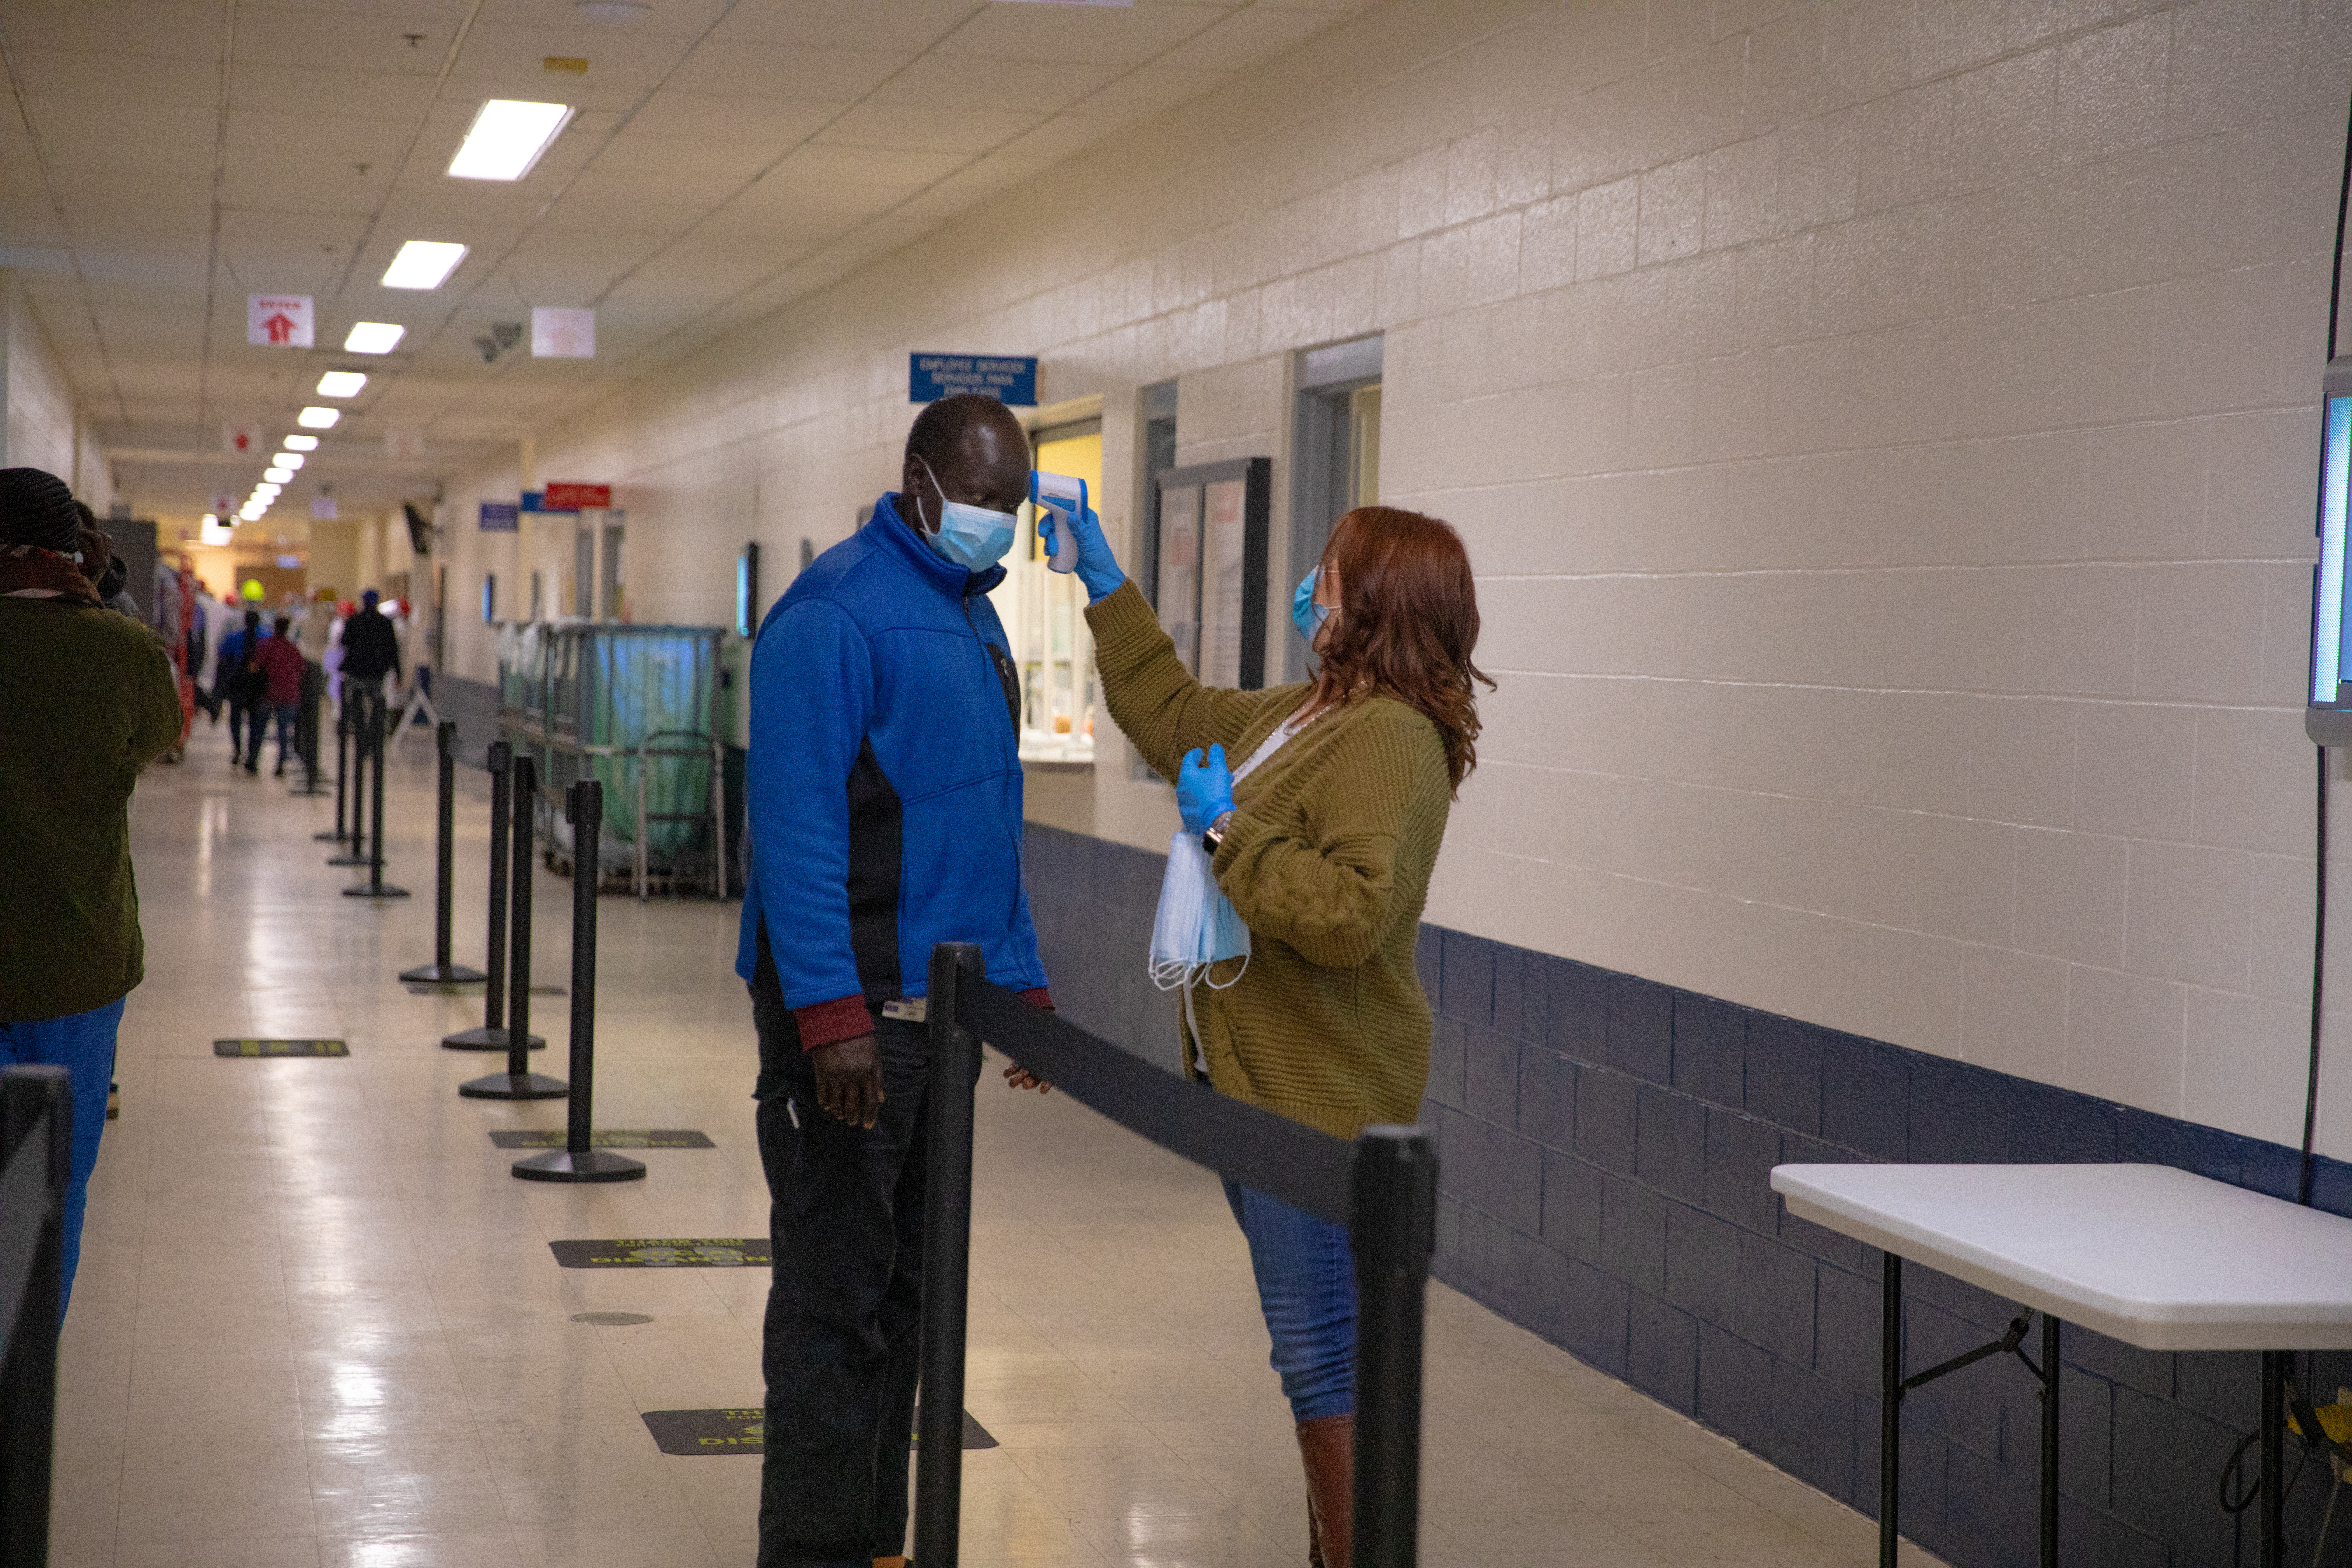 An employee has his temperature checked, part of the measures installed to help slow the spread of coronavirus disease (COVID-19) at the Seaboard Foods pork processing plant in Guymon, Oklahoma, U.S. May 8, 2020. Picture taken May 8, 2020. Seaboard Foods/Handout via REUTERS.